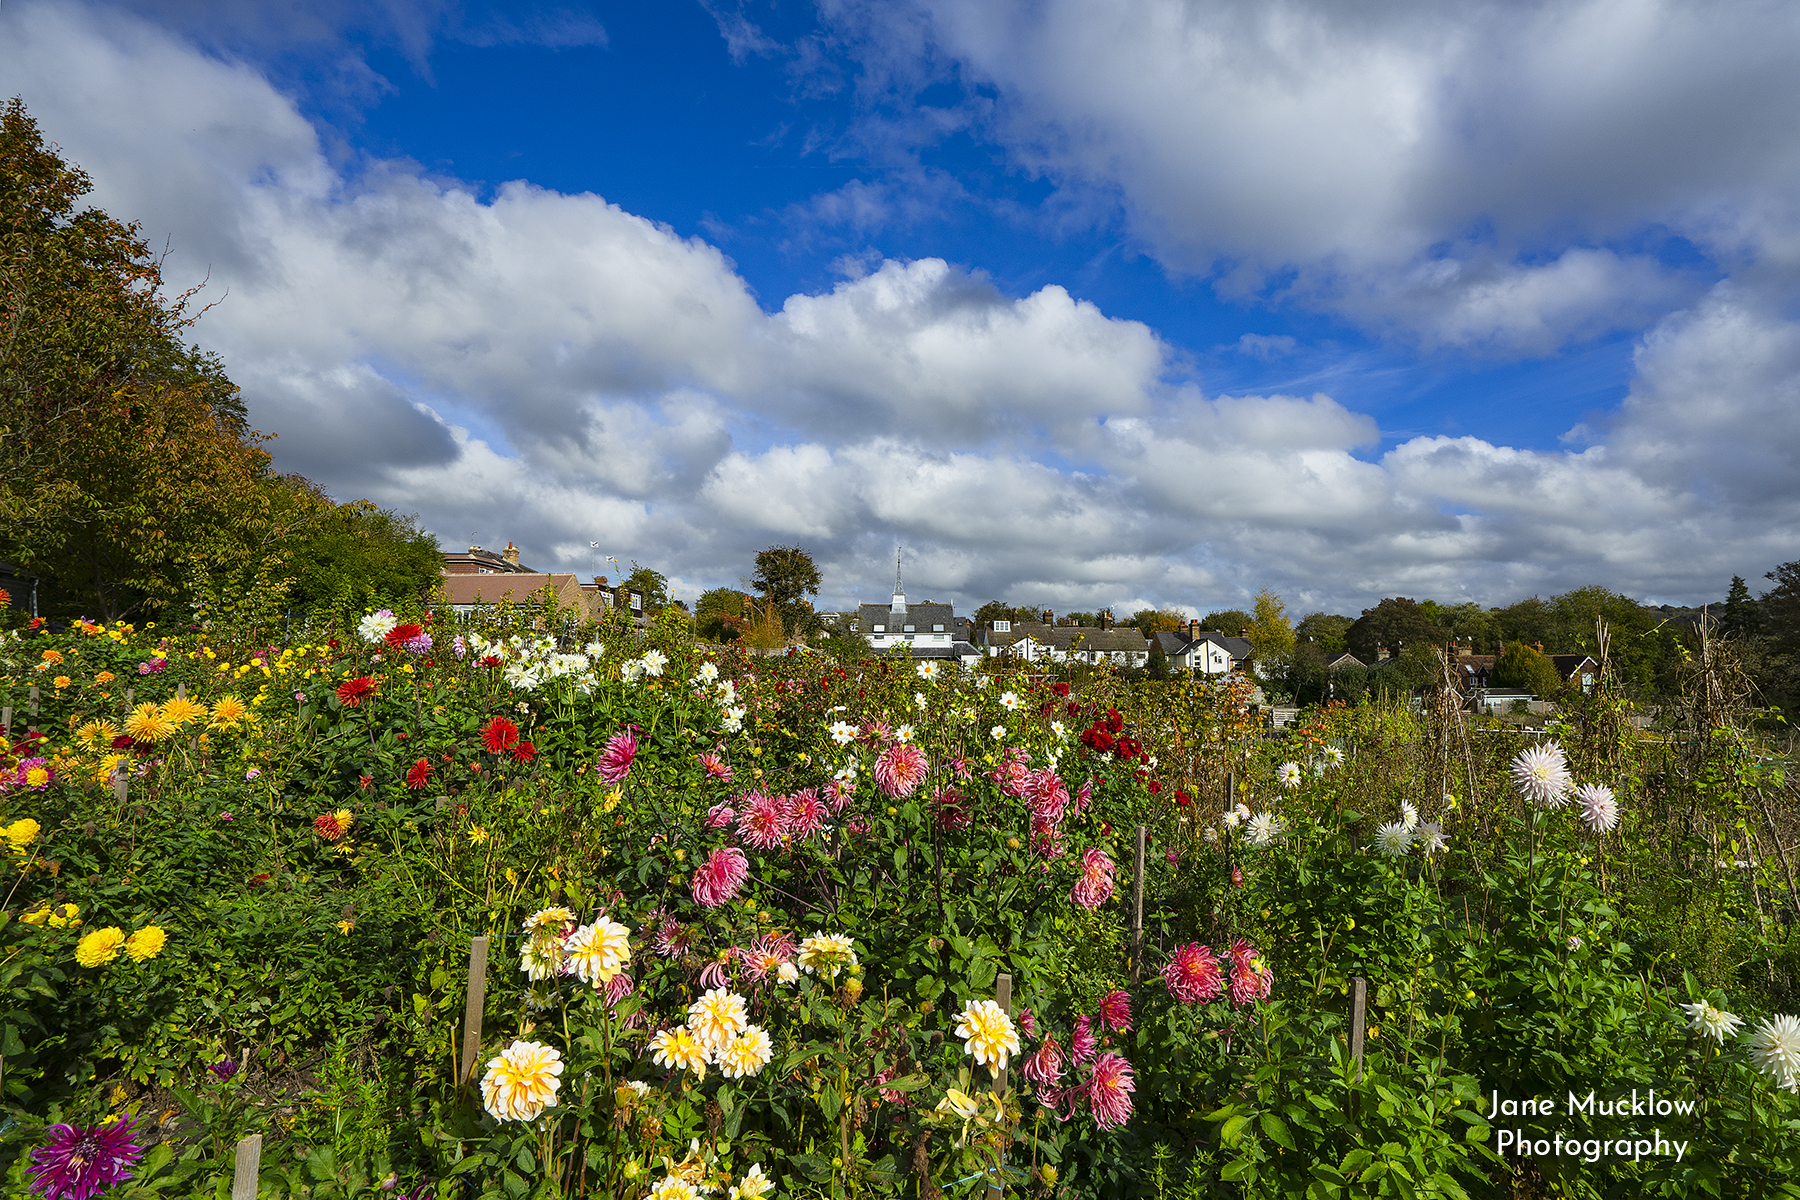 Photo of Shoreham Allotments with dahlias, by Jane Mucklow